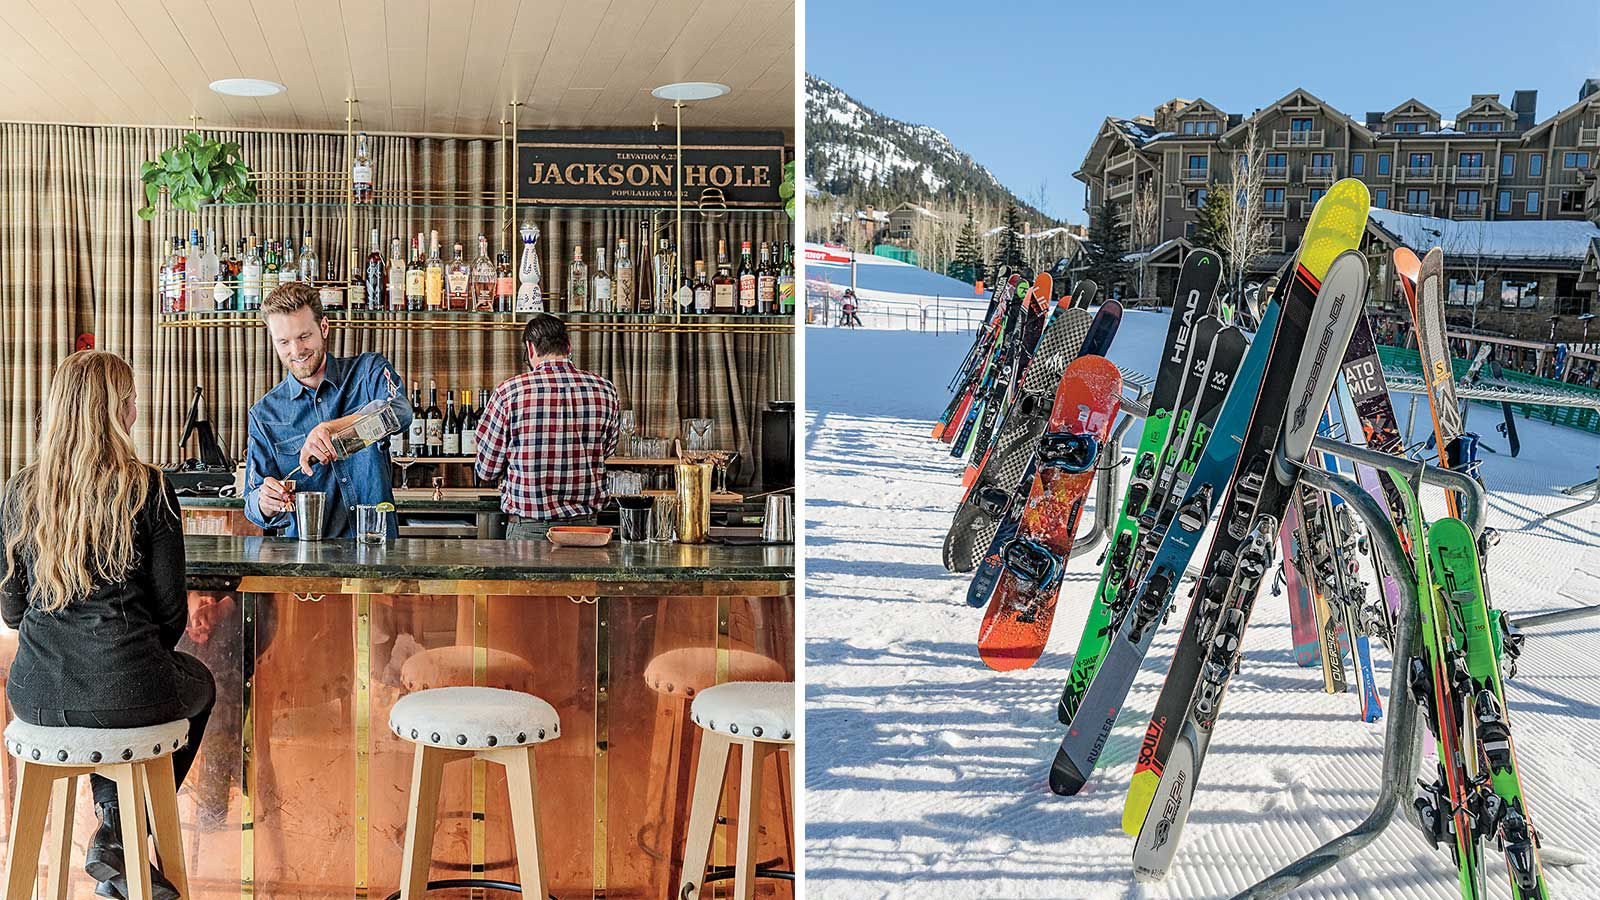 Scenes from Jackson Hole, Wyoming